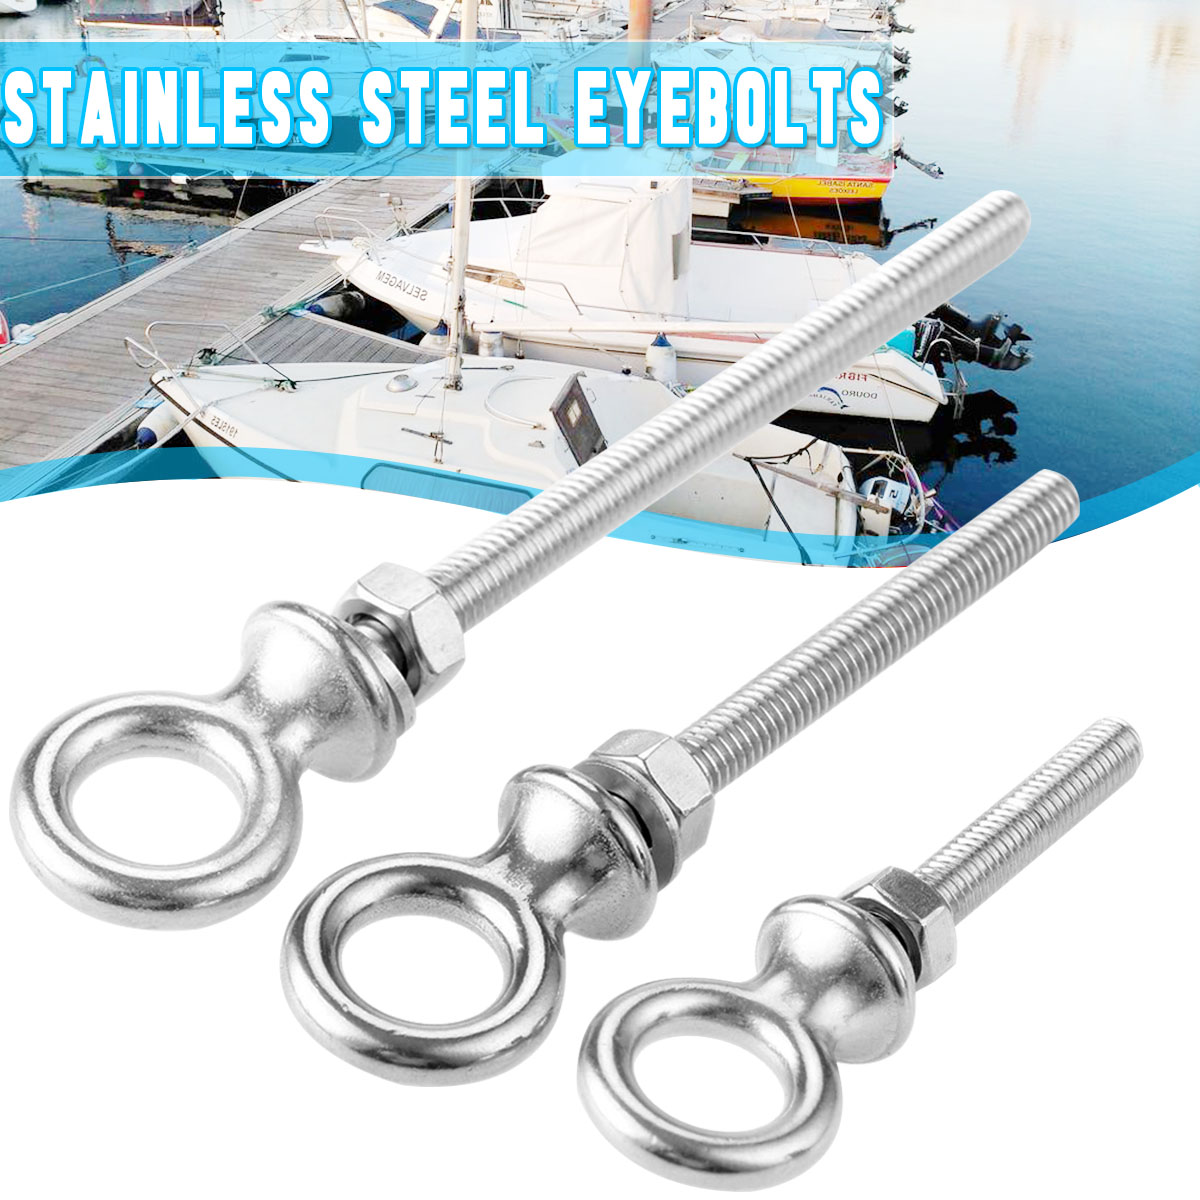 Audew Stainless Steel Boat Yacht Marine Grade Eye Bolts Screw Thread 60/80/100mm Nuts  High Strength Good Hardness Accessories